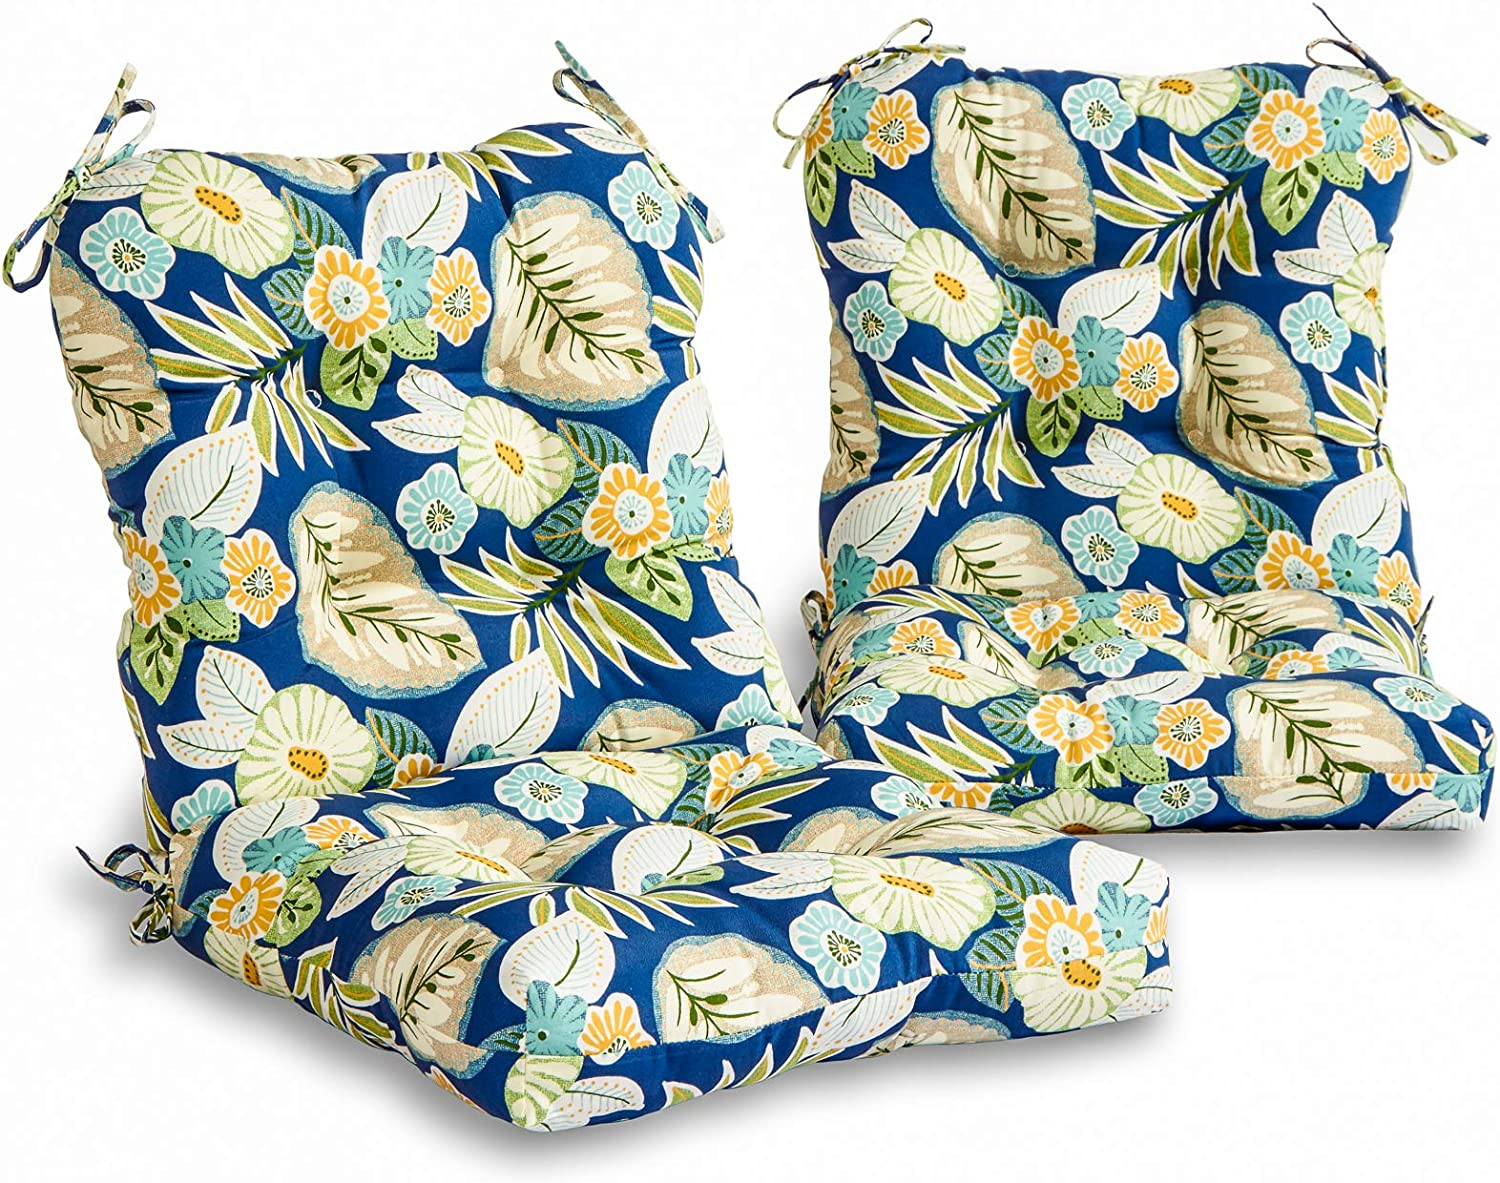 South Pine Porch AM6815S2-MARLOW Marlow Blue Floral Outdoor Seat/Back Chair Cushion, Set of 2